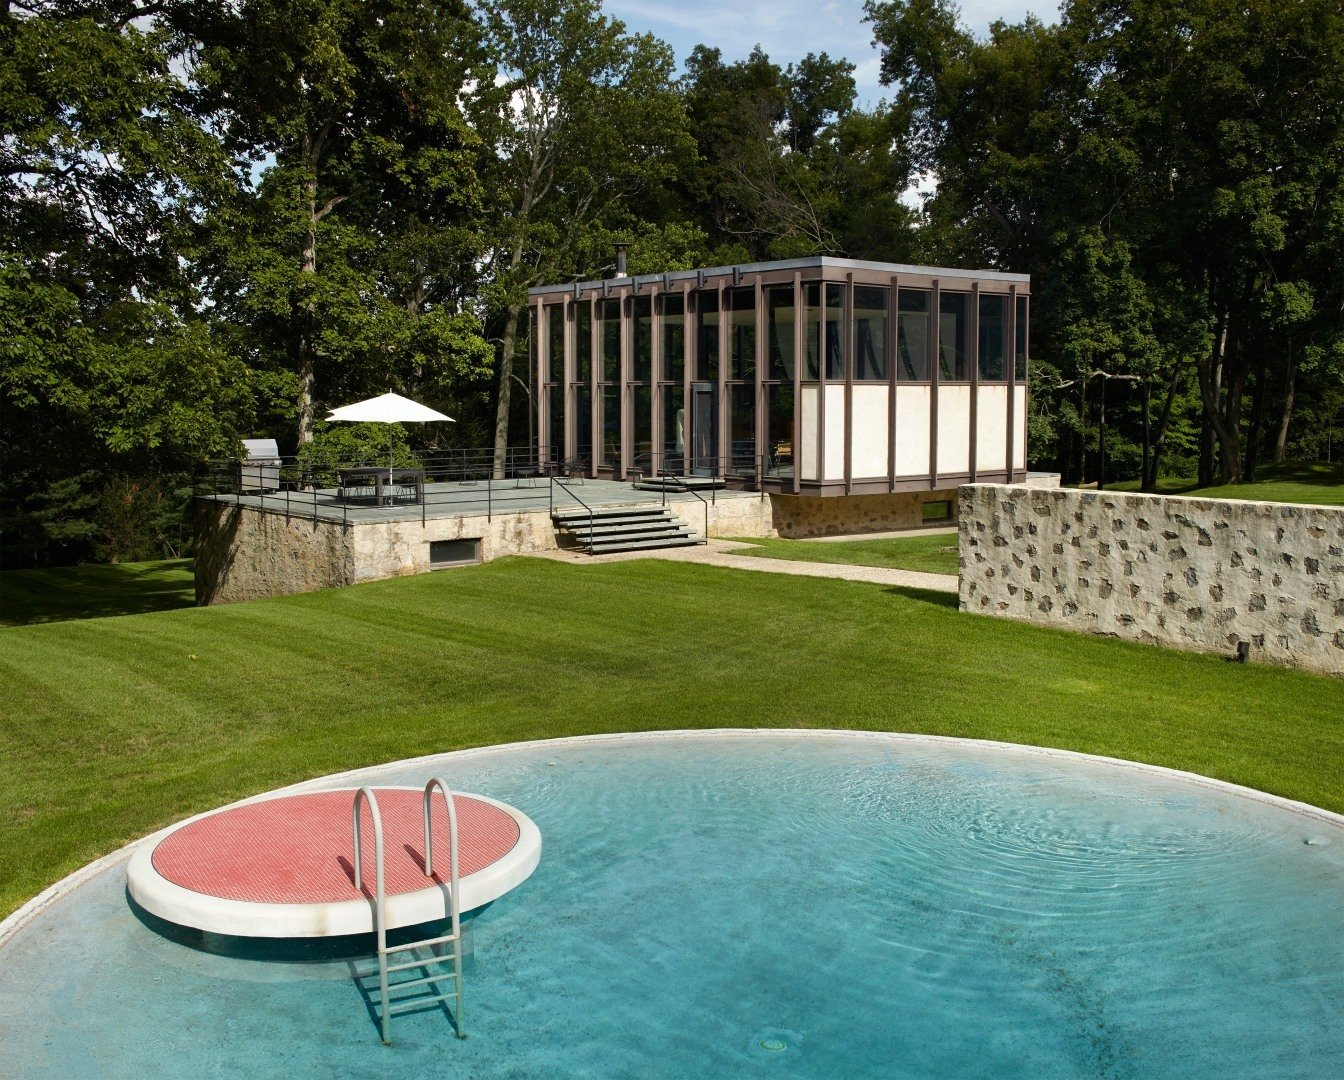 The new pool house and transformed barn that were created by Roger Ferris + Partners during a recent renovation, work together to create a courtyard that borders the original swimming pool. While a very similar circular pool can be found at the Glass House, this one features a lily pad diving platform that's finished with red tile.  Wiley House